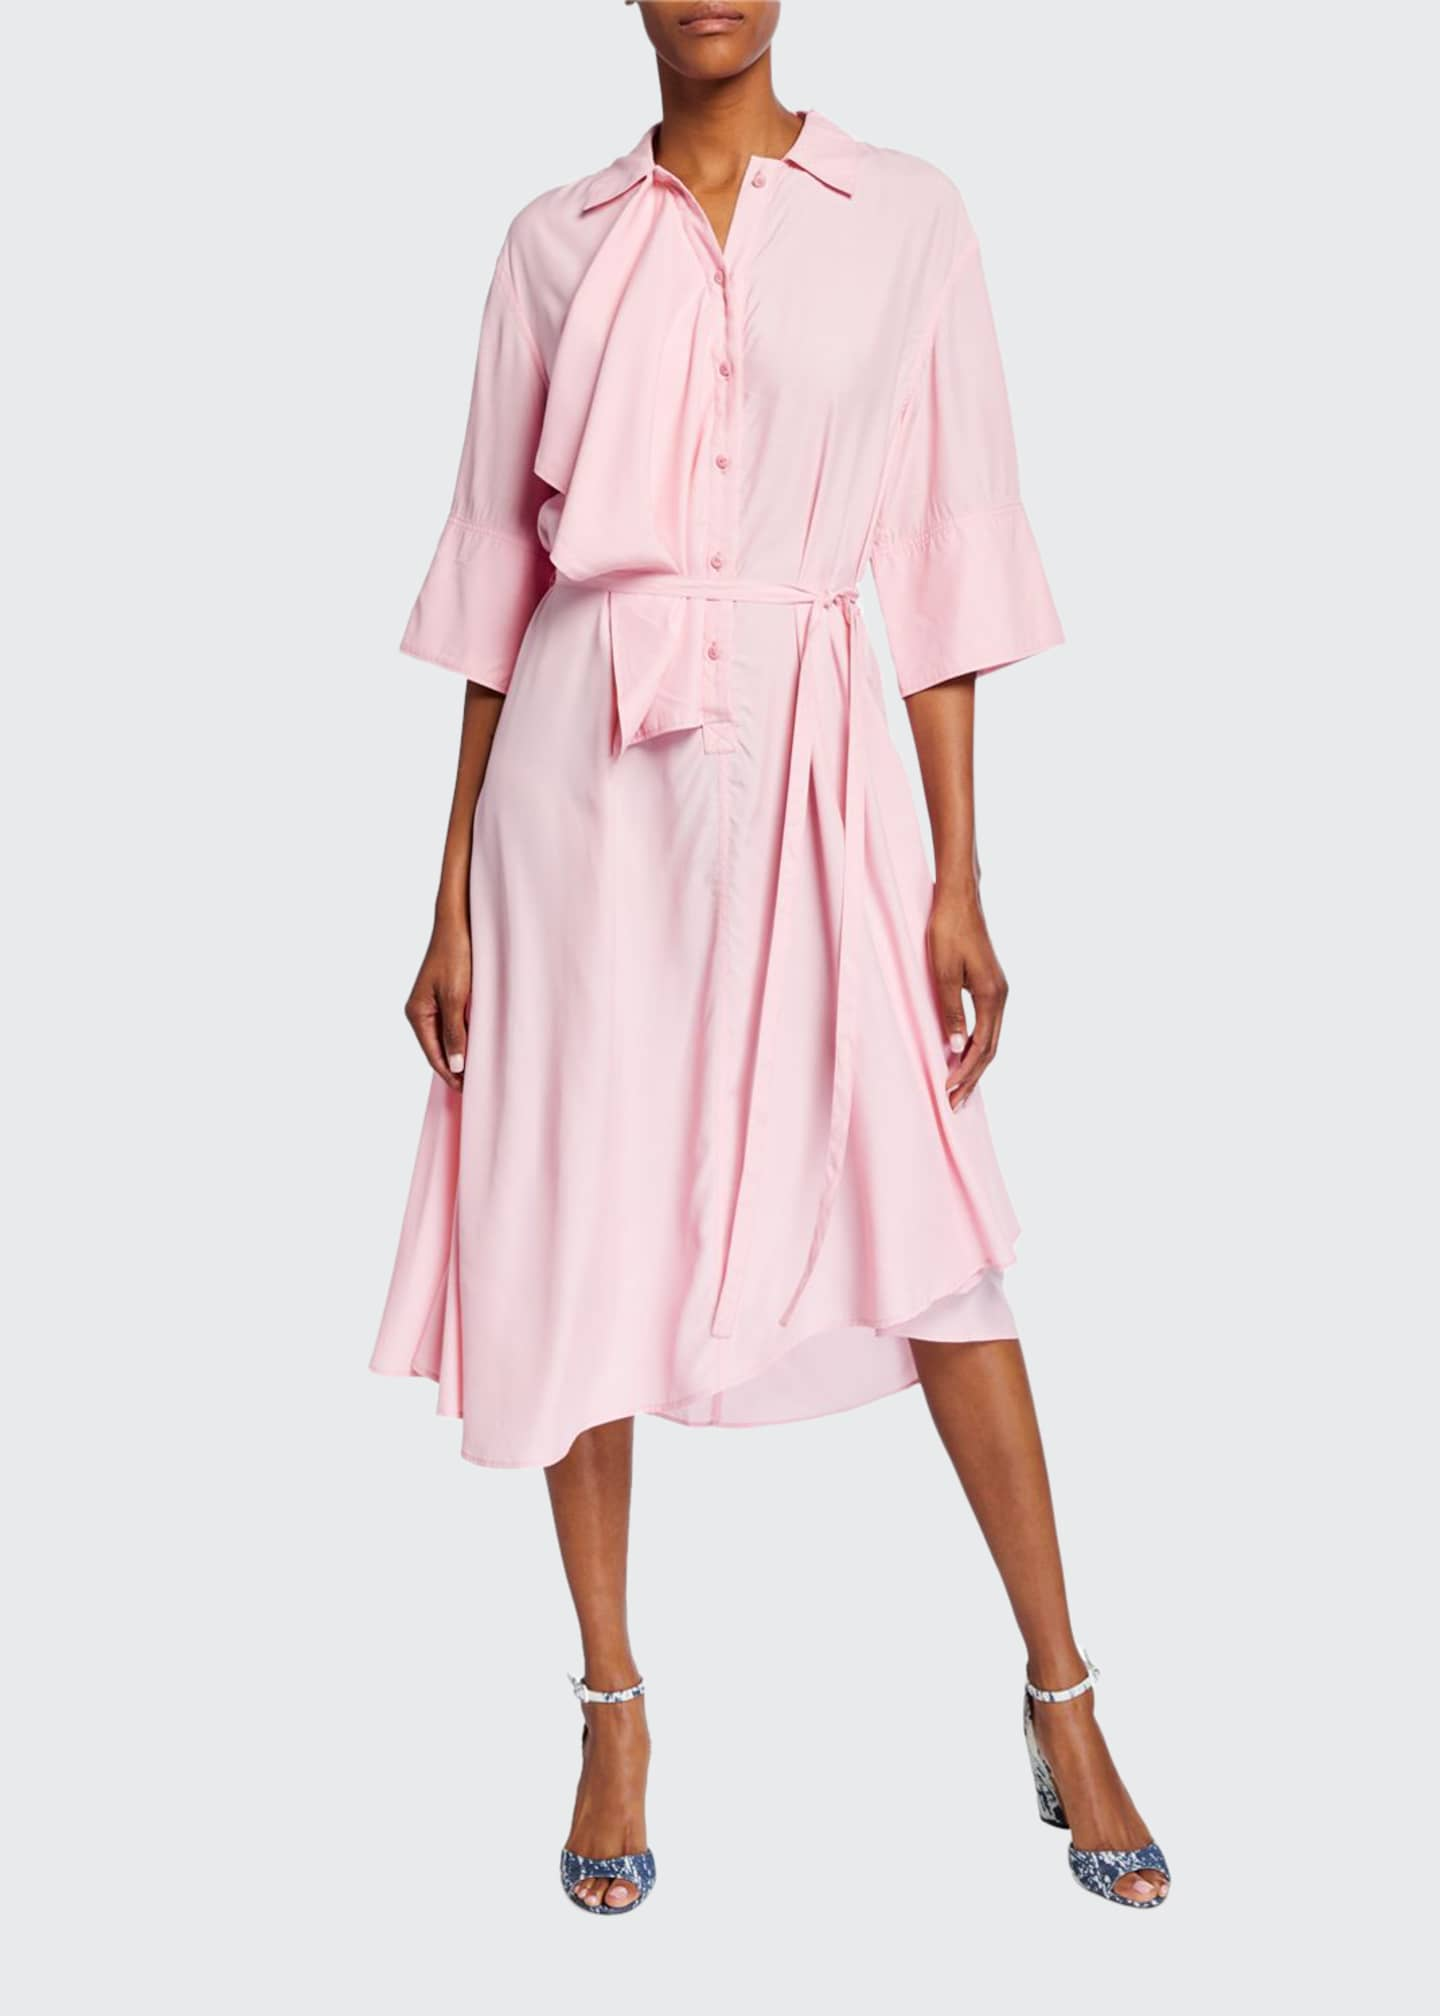 JW Anderson Ruffled Drape-Front Draped Dress